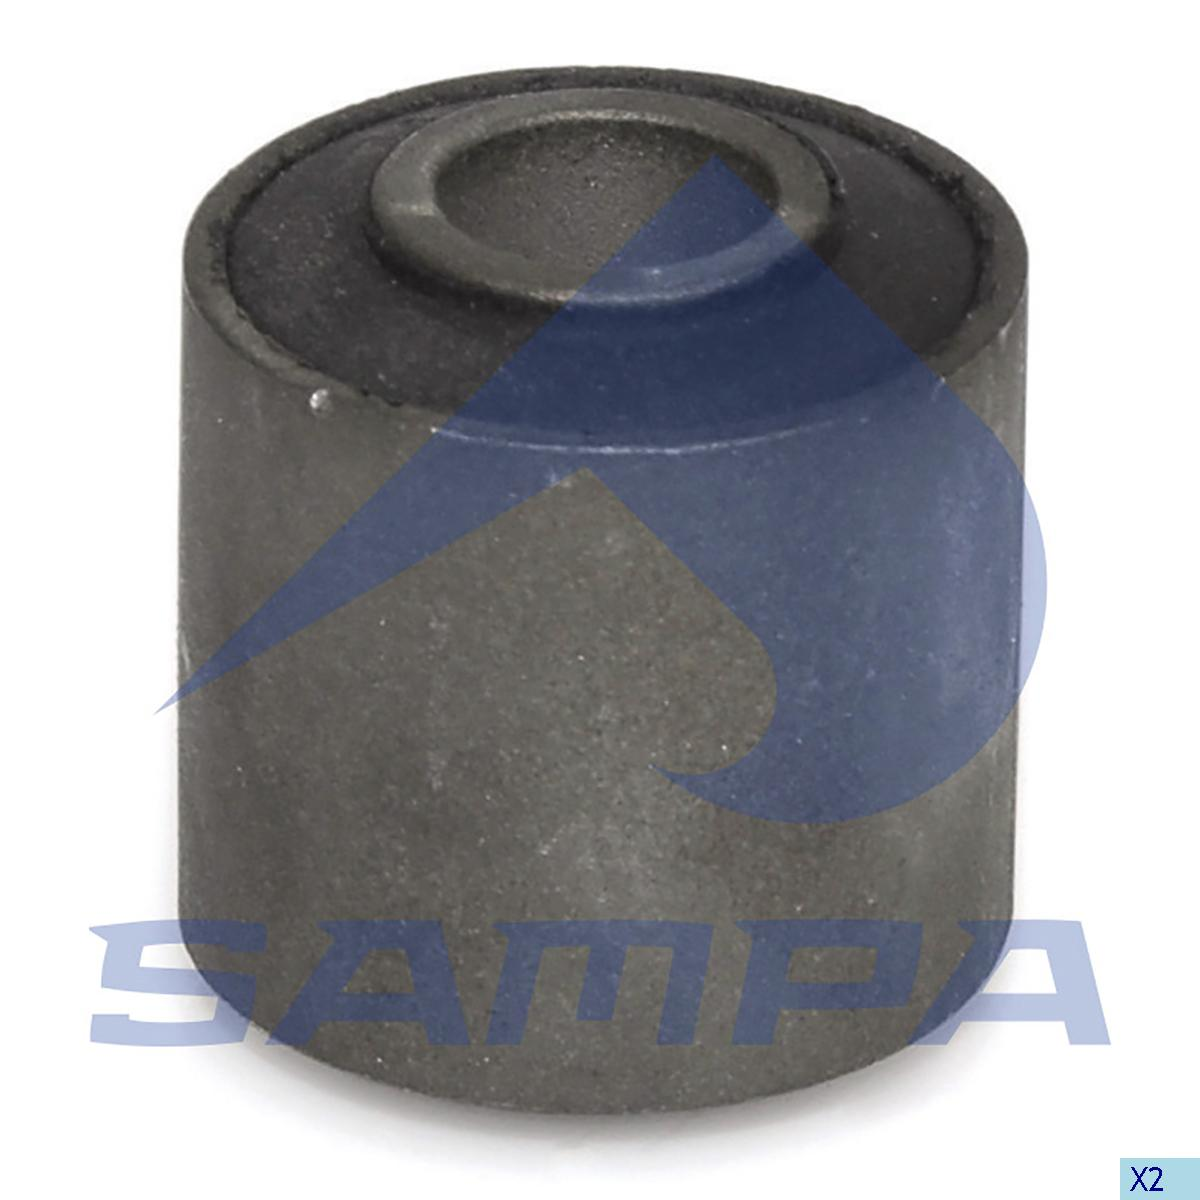 Rubber Bushing, Stabilizer Bar, Iveco, Suspension